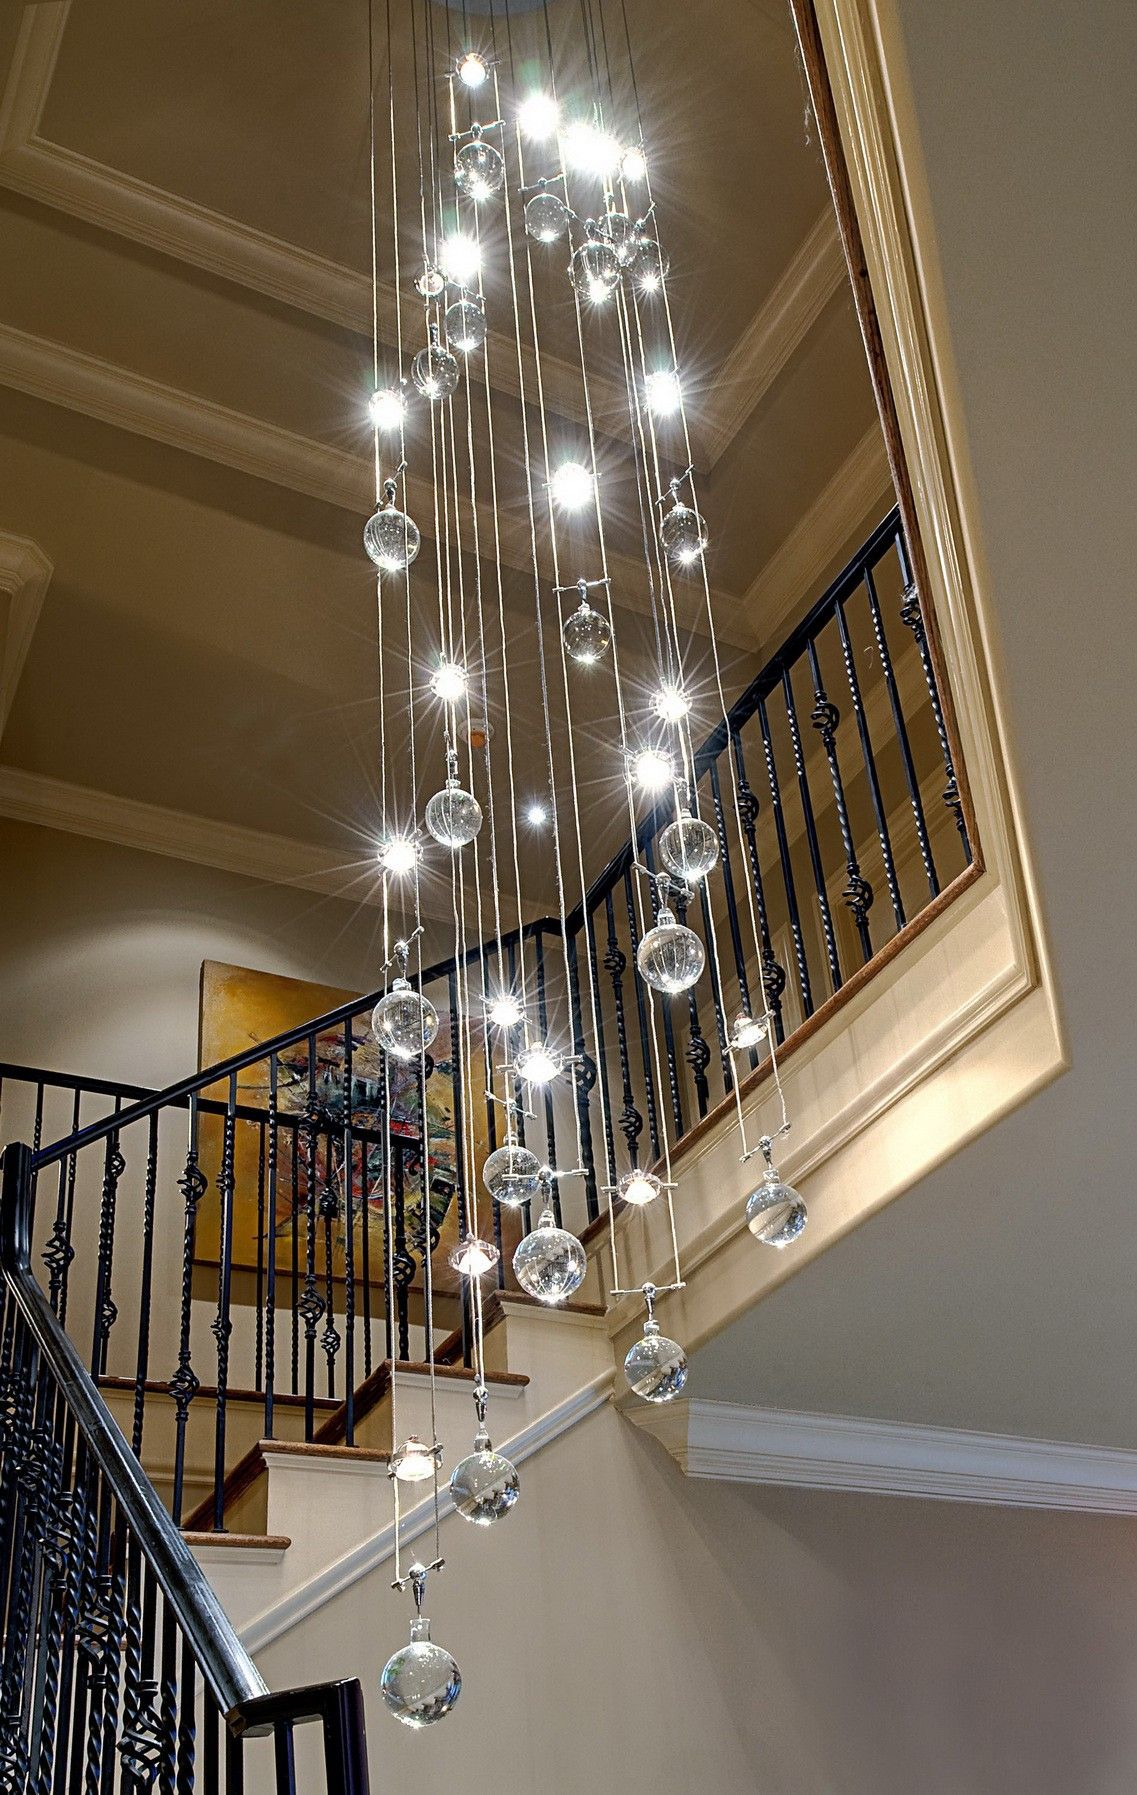 Contemporary Foyer Lighting : Greet your guest with dazzling foyer chandeliers cool